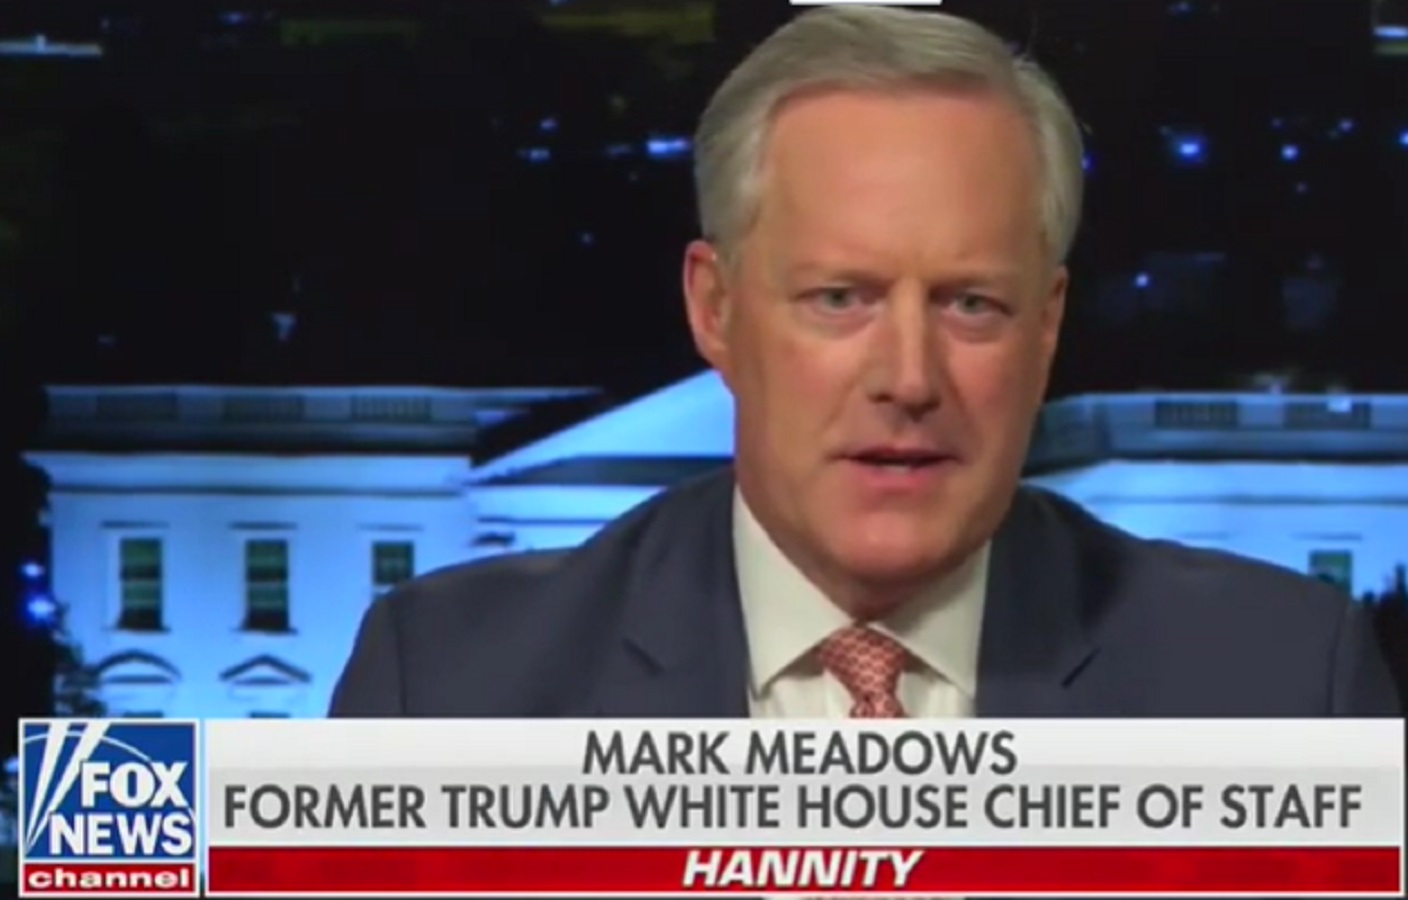 Mark Meadows: Trump is 'Planning Next Administration' (VIDEO)